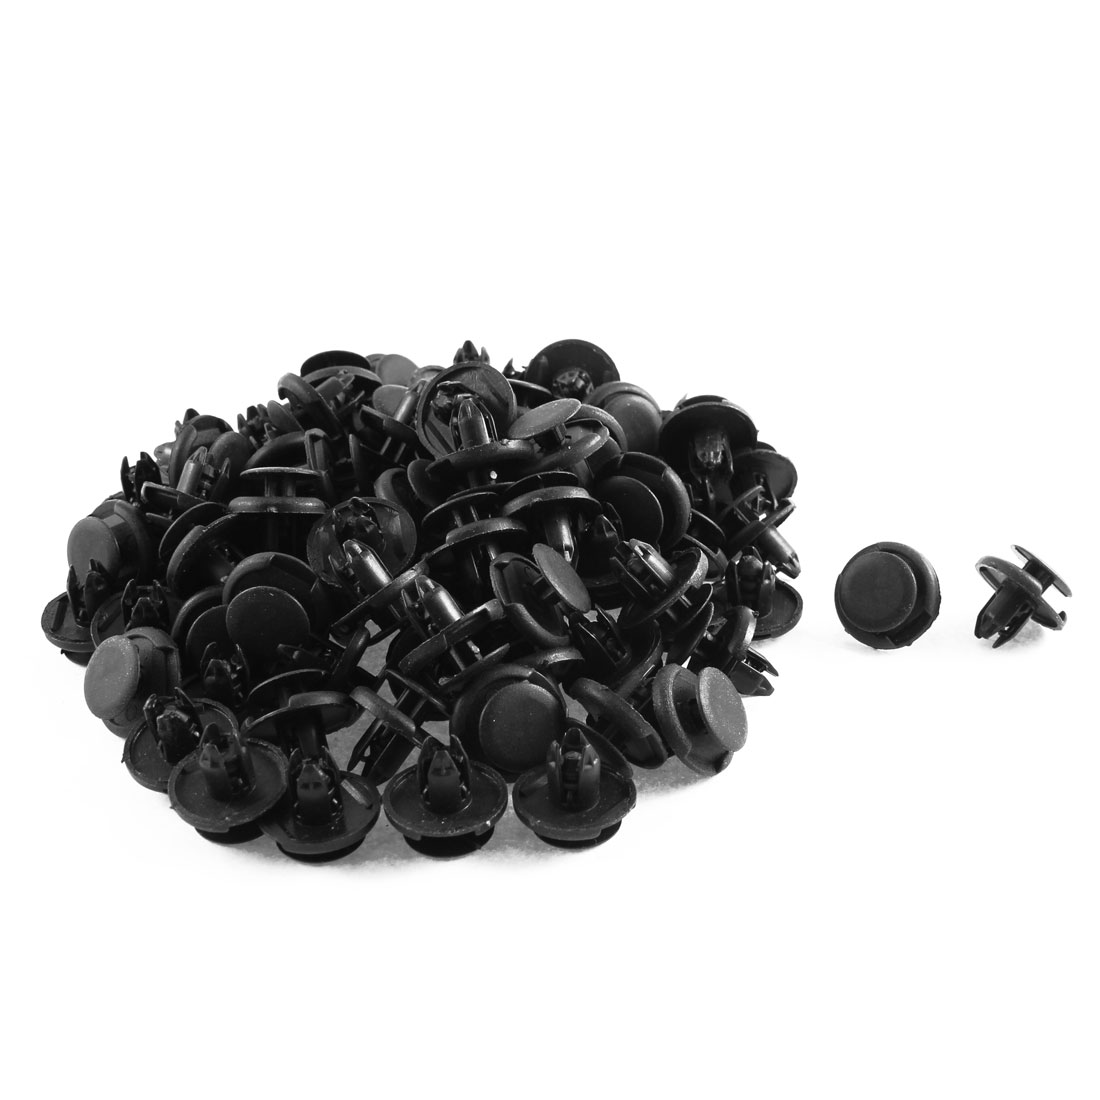 100 Pcs Black Plastic Splash Guard Fastener Mat Clips 8mm x 10mm x 19mm